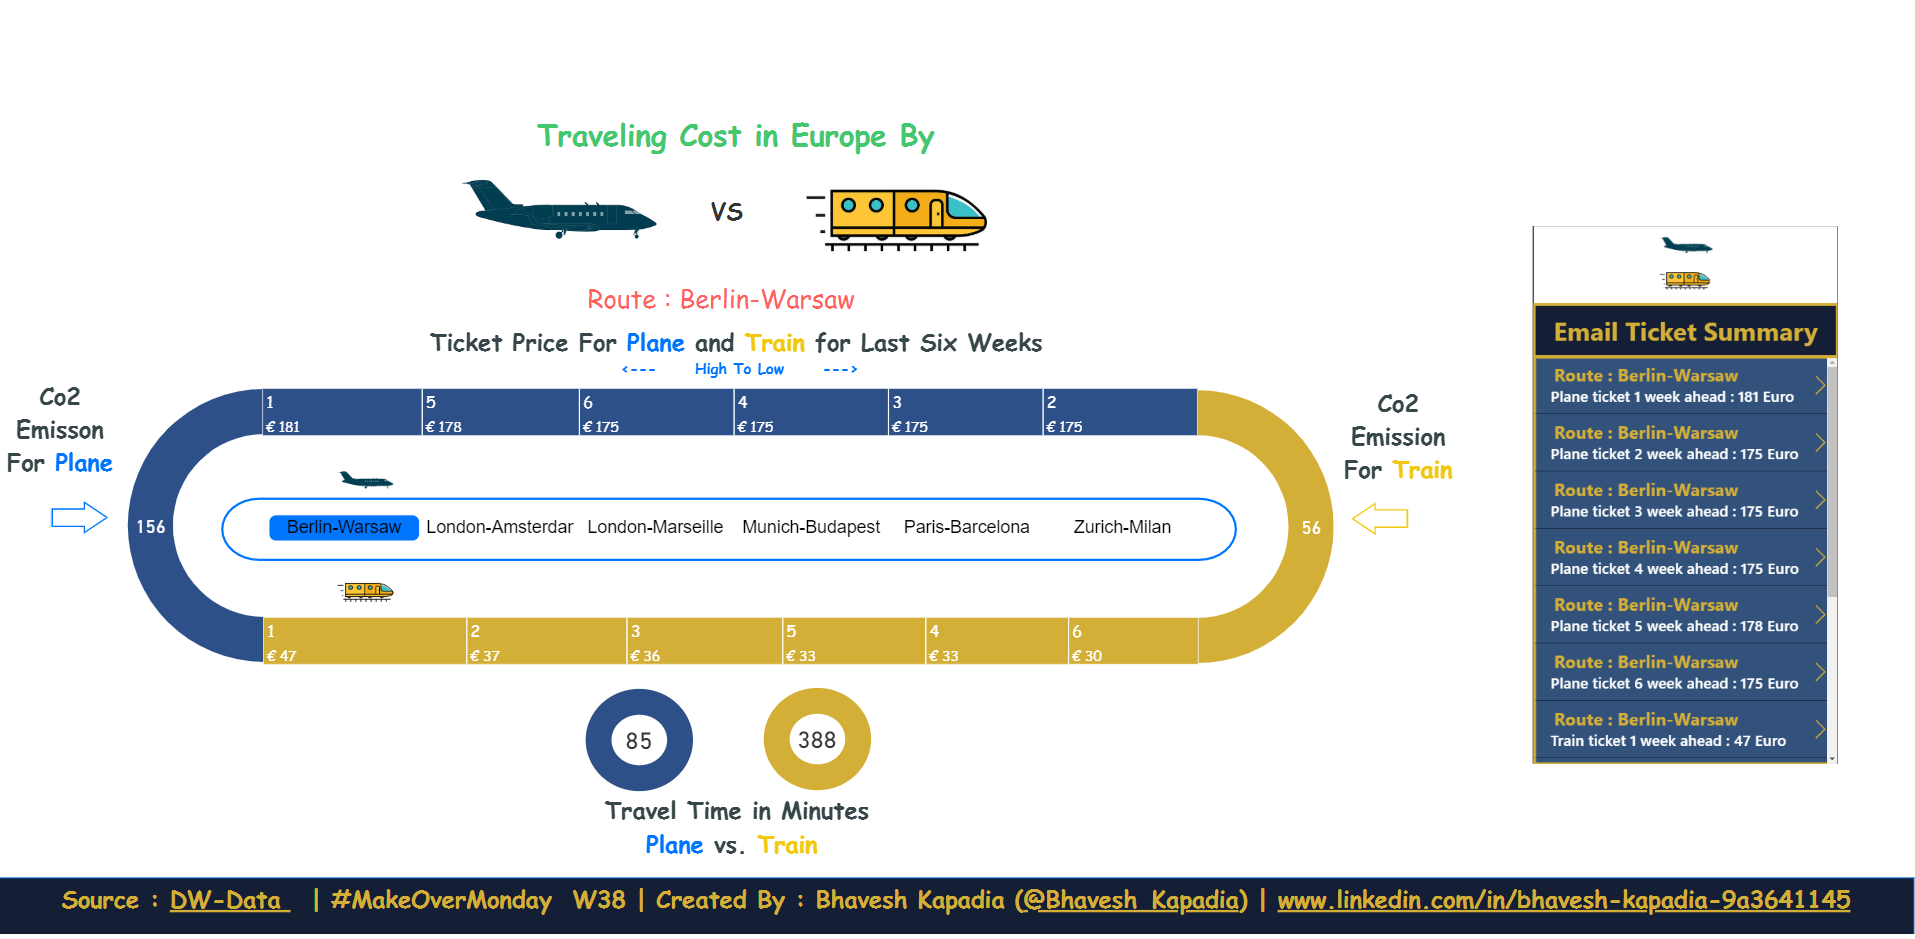 Traveling Cost By Plane Vs. Train In Europe and Email Ticket Summary From The Dashboard